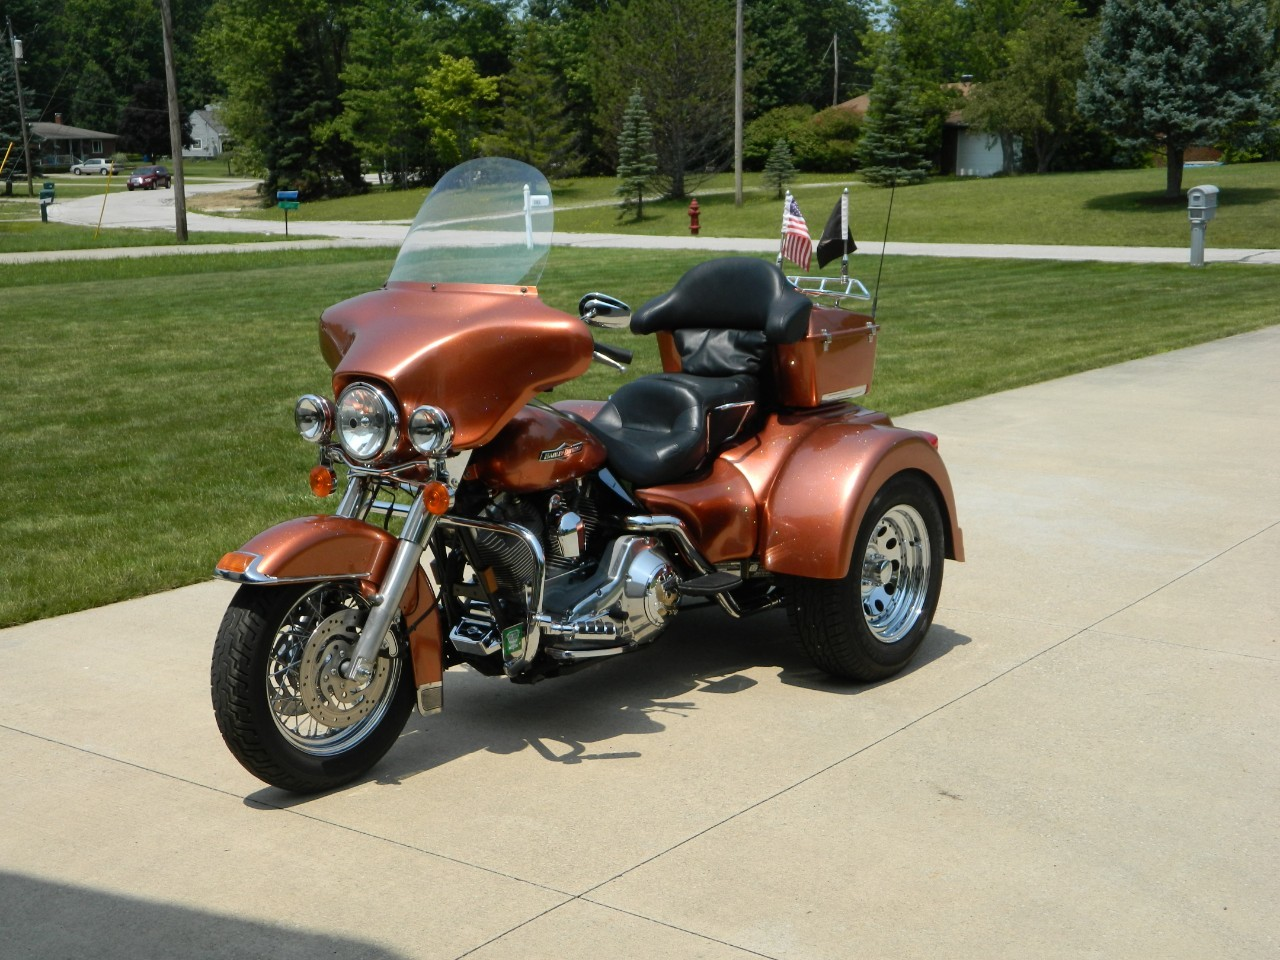 Harley Trikes For Sale >> 2005 Harley Davidson Electra Glide Classic